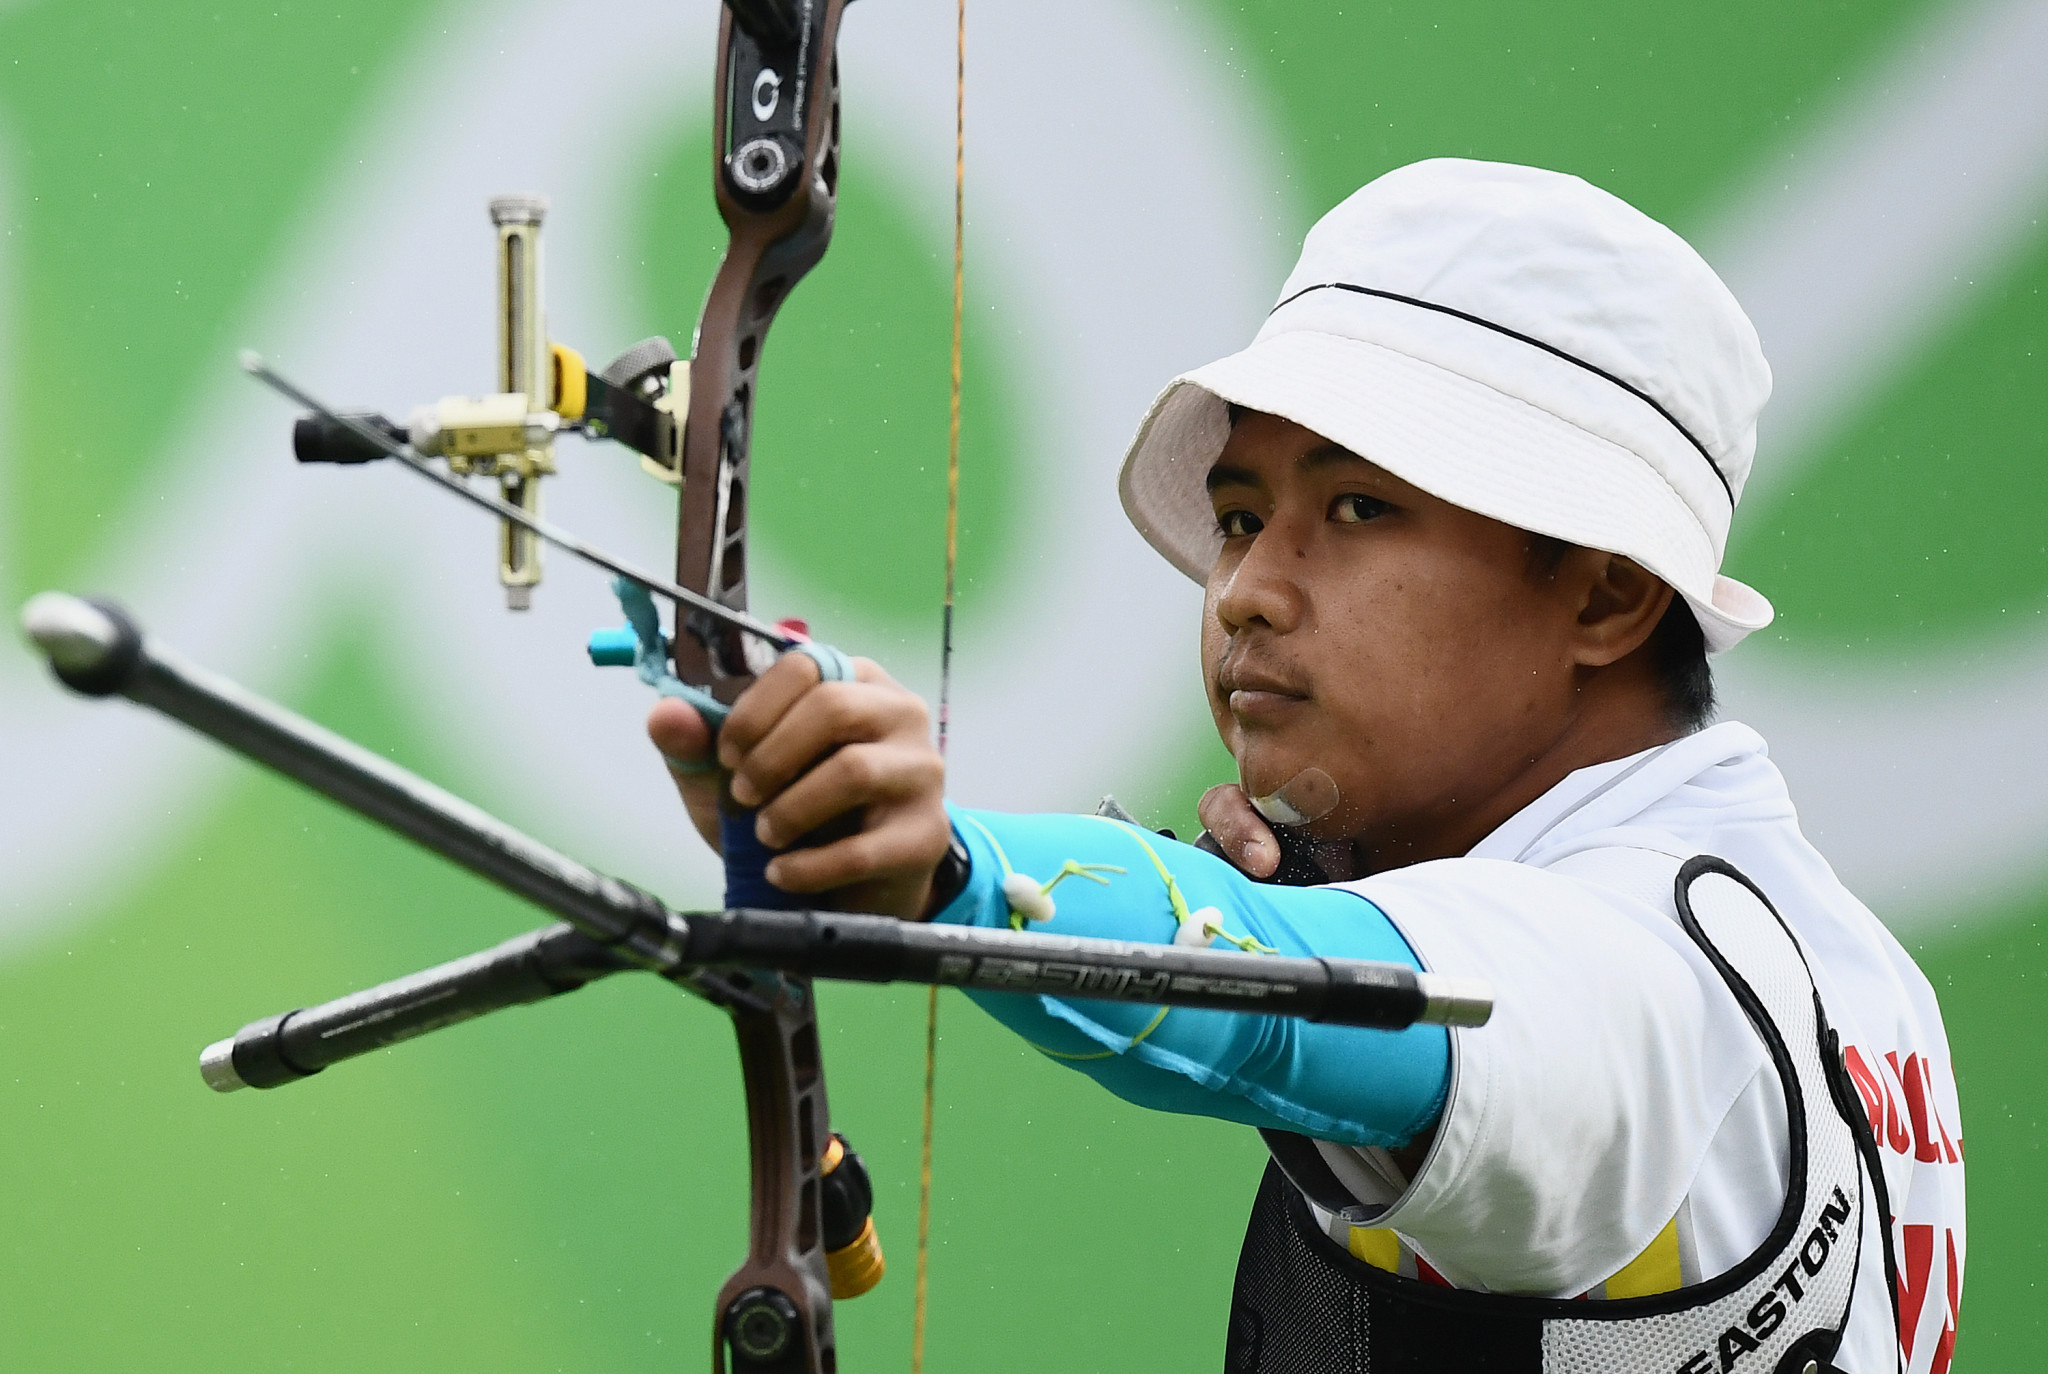 Asian Games 2018 Archery